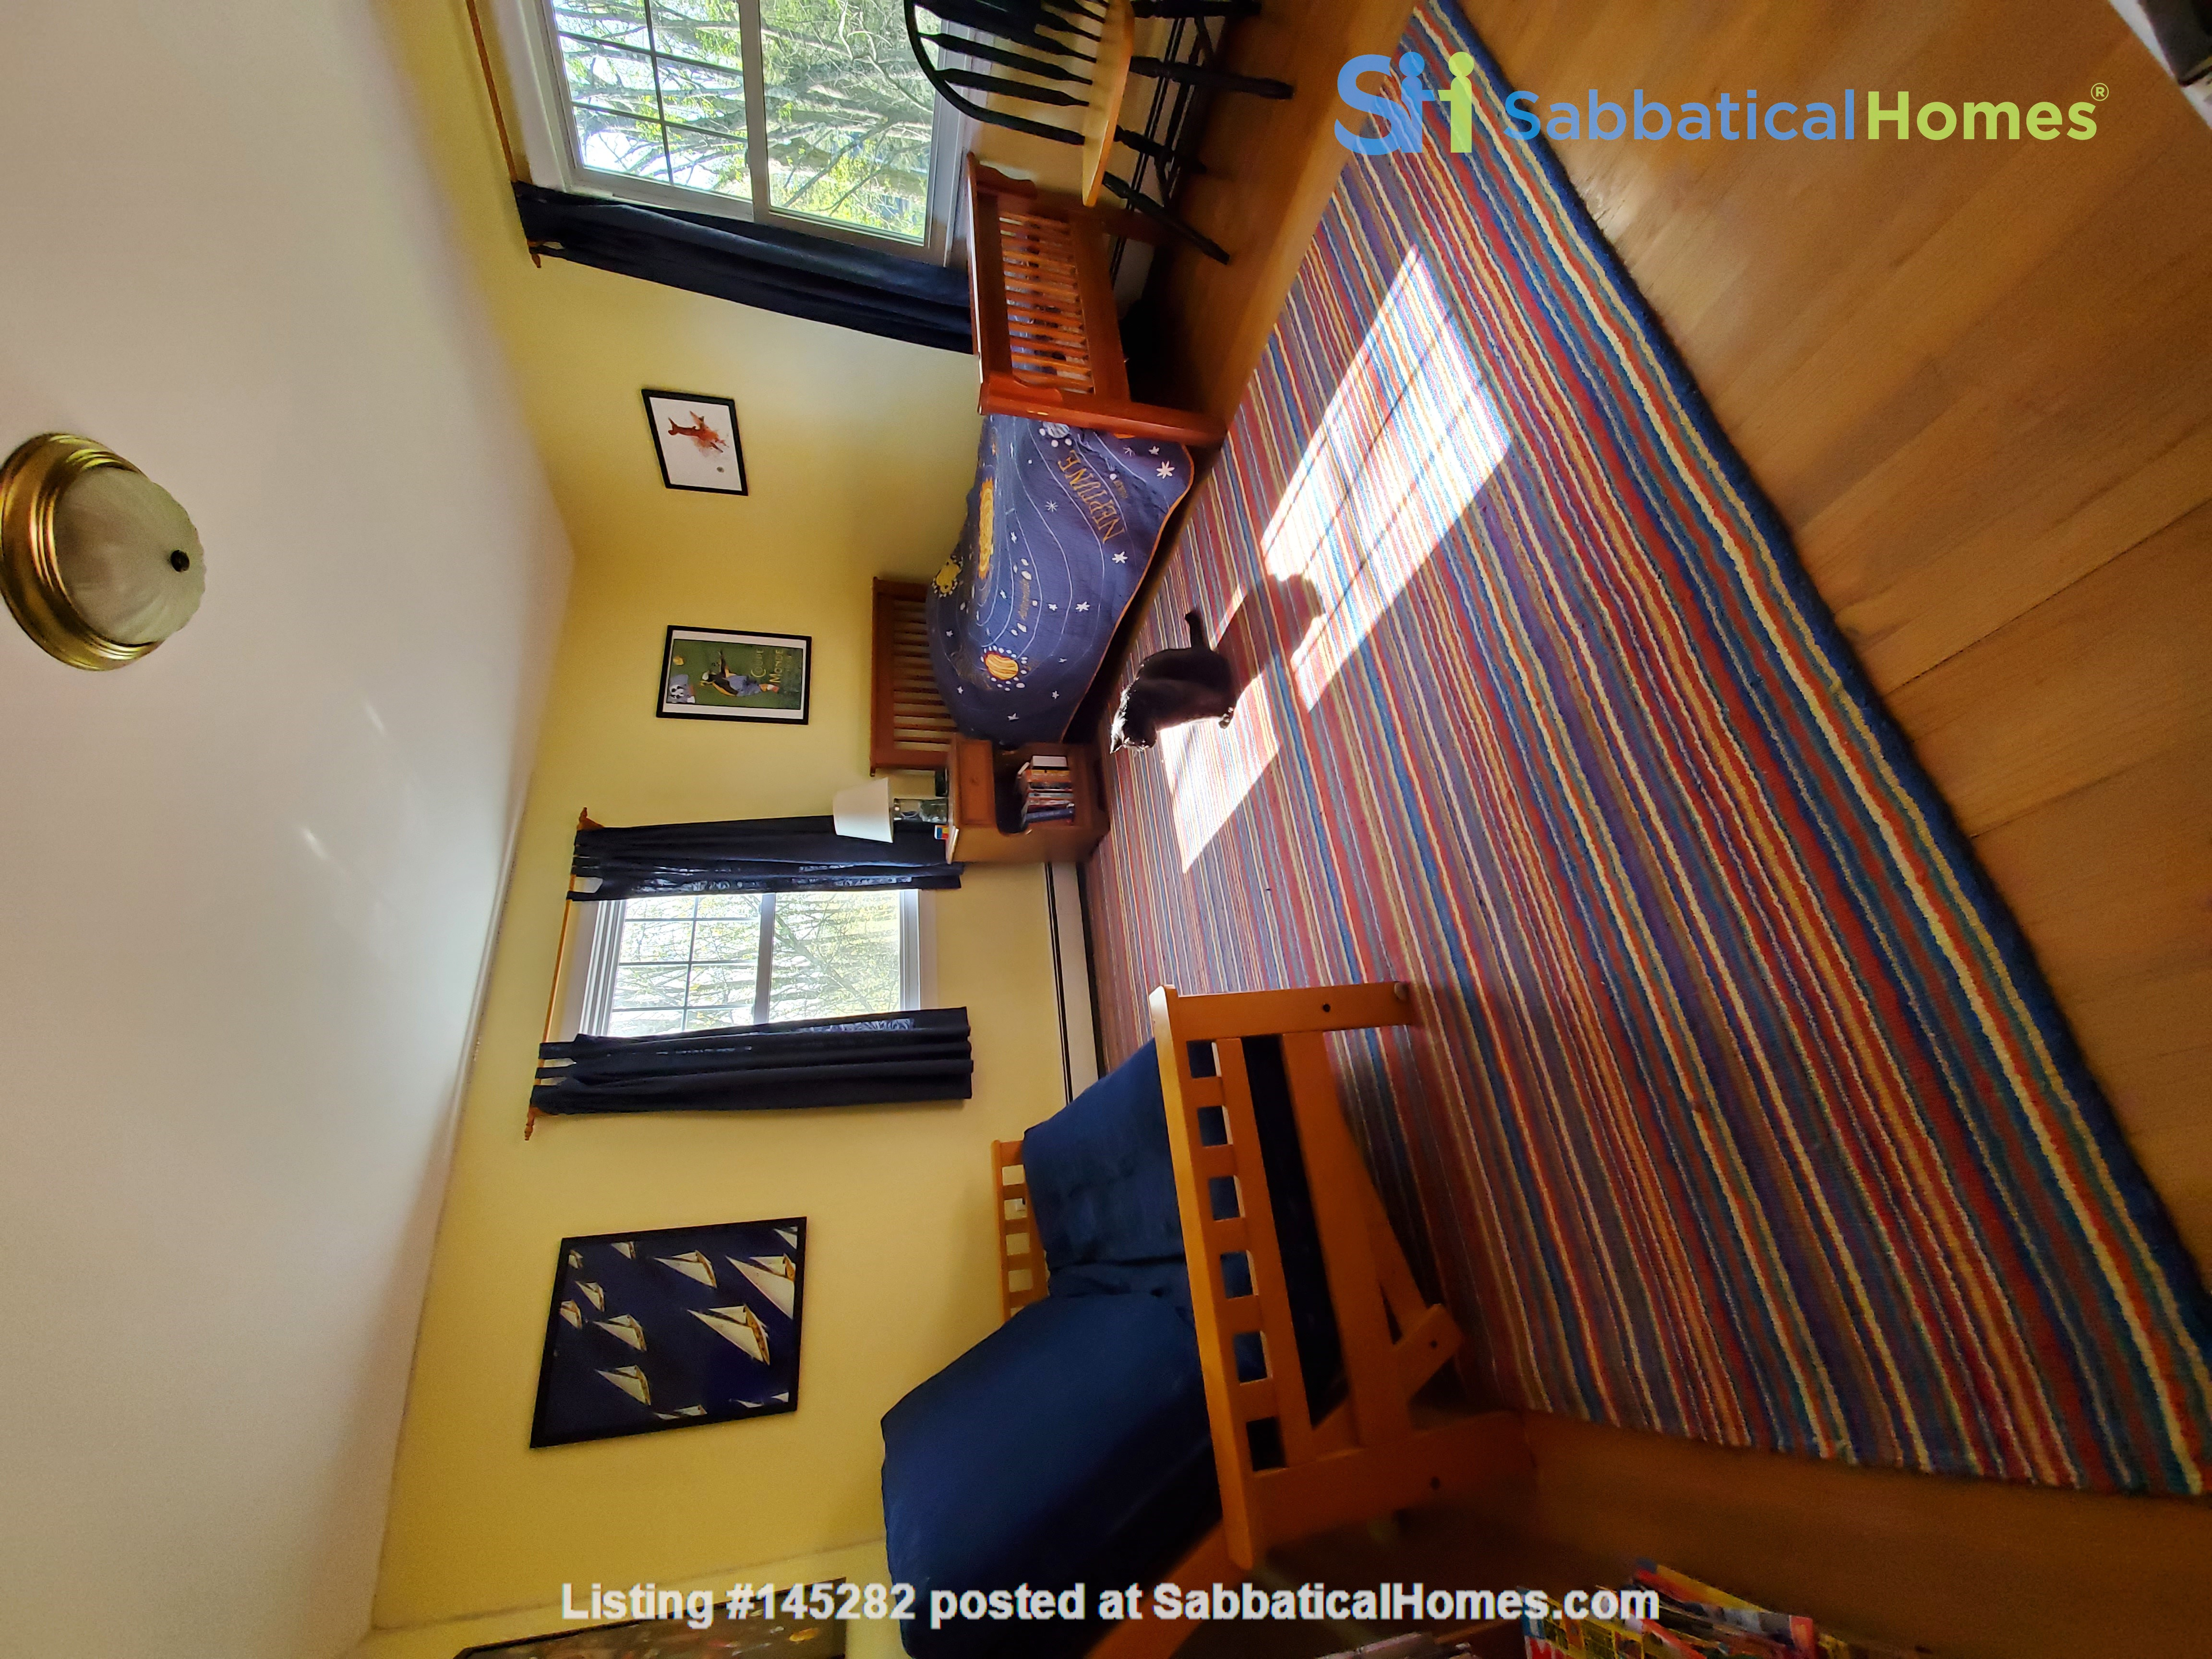 Spacious, Peaceful Getaway in Beautiful Amherst, MA, 4 BR 3.5 ba Home Rental in Amherst, Massachusetts, United States 7